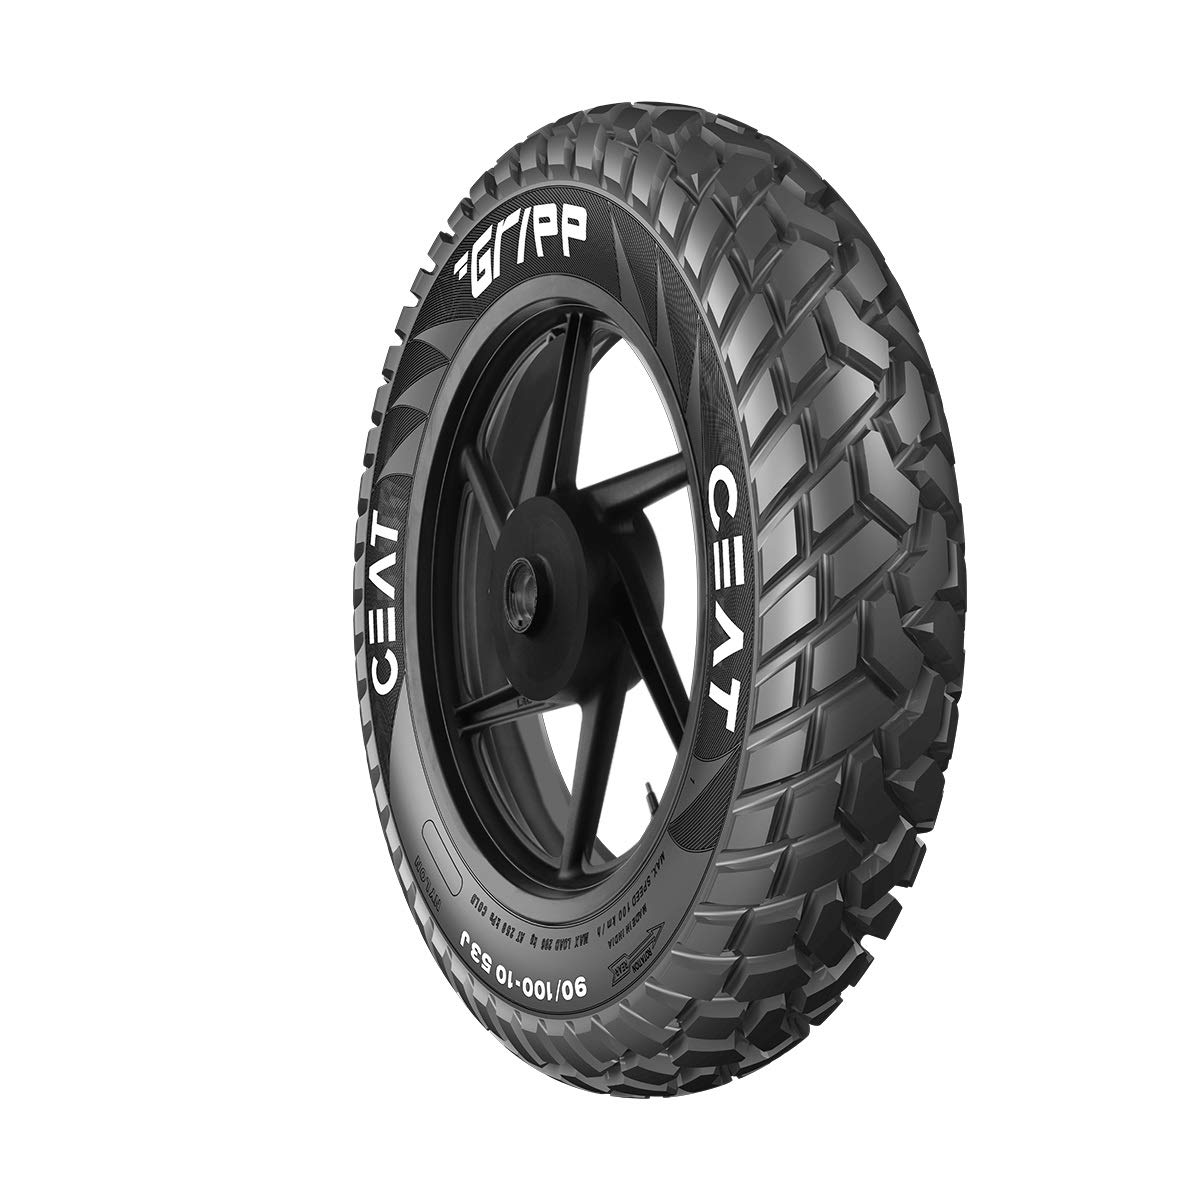 Ceat Gripp  90/100 - 10  53J Tube-Type Scooter Tyre, Rear (Home Delivery)  (Not Tubeless Tyre) product image